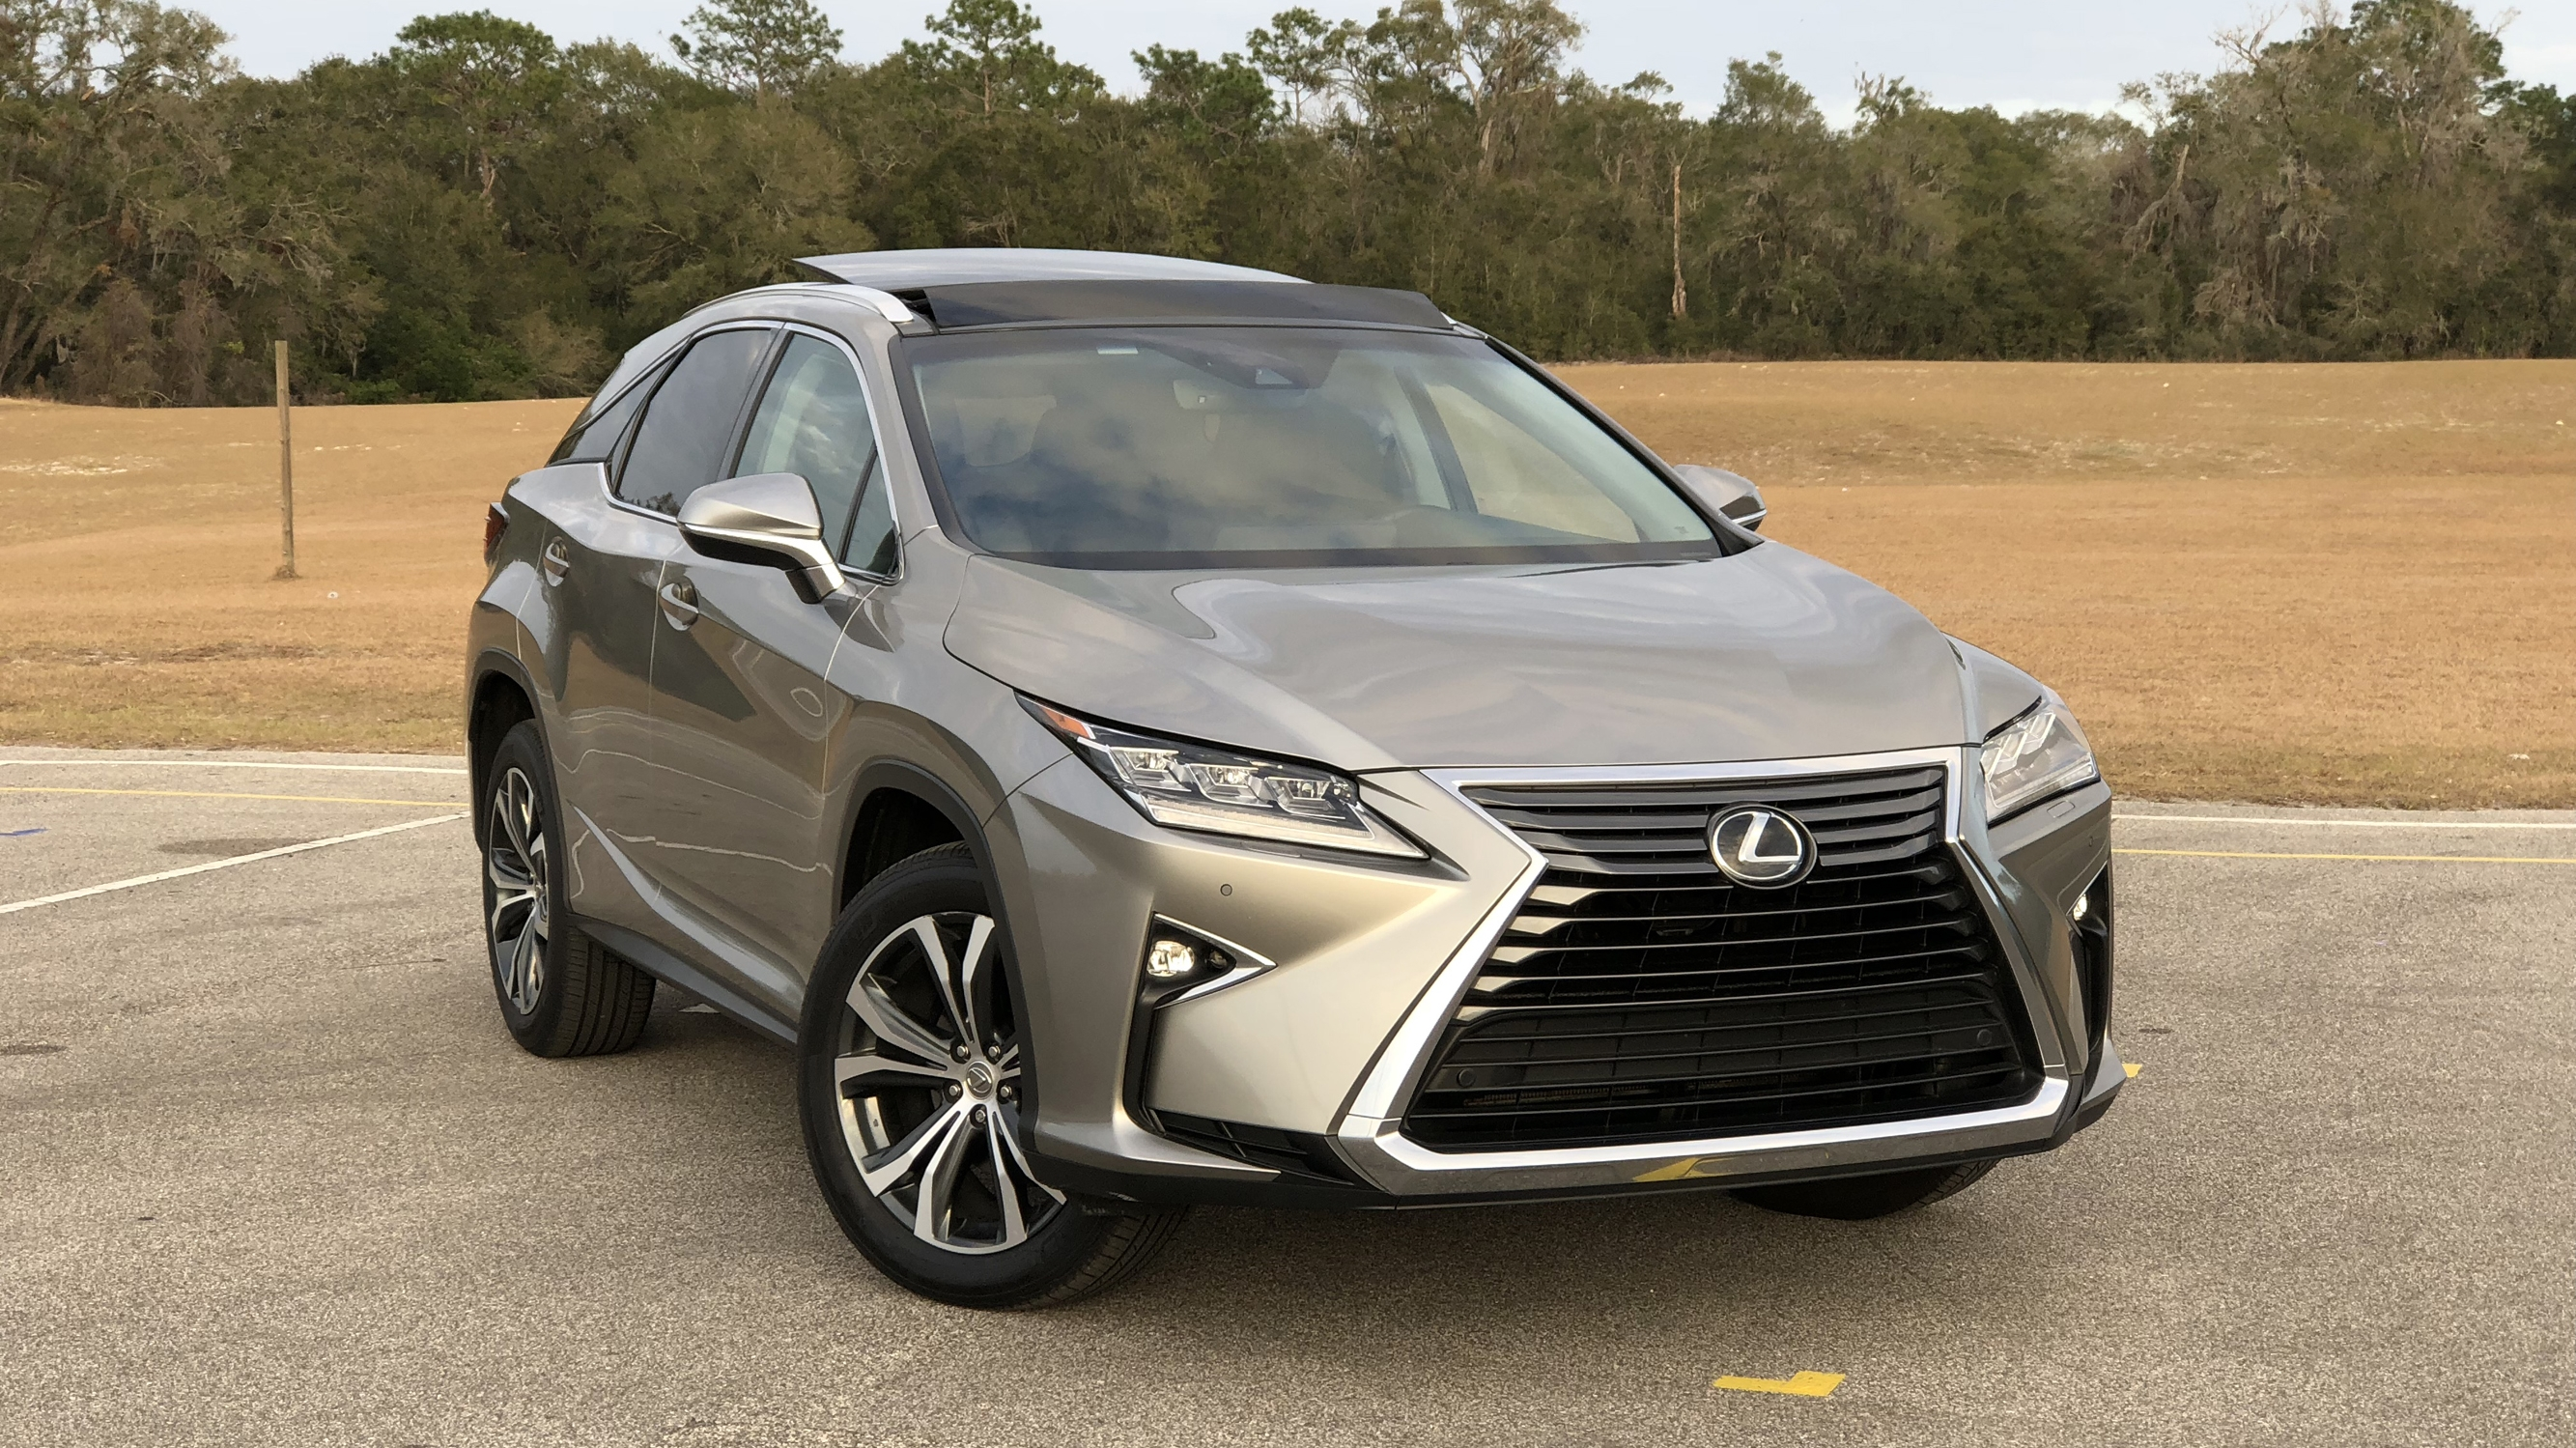 2018 lexus rx350 driven top speed. Black Bedroom Furniture Sets. Home Design Ideas